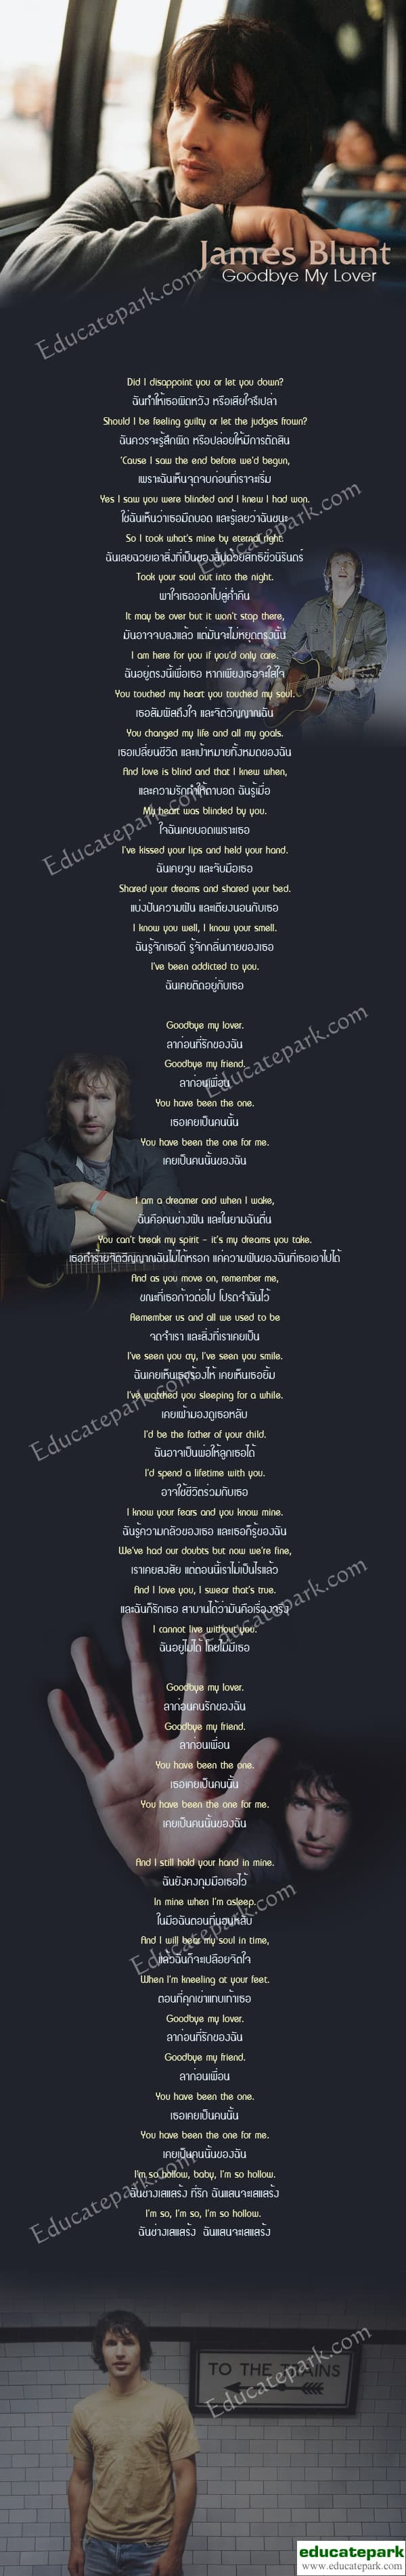 แปลเพลง Goodbye My Lover - James Blunt